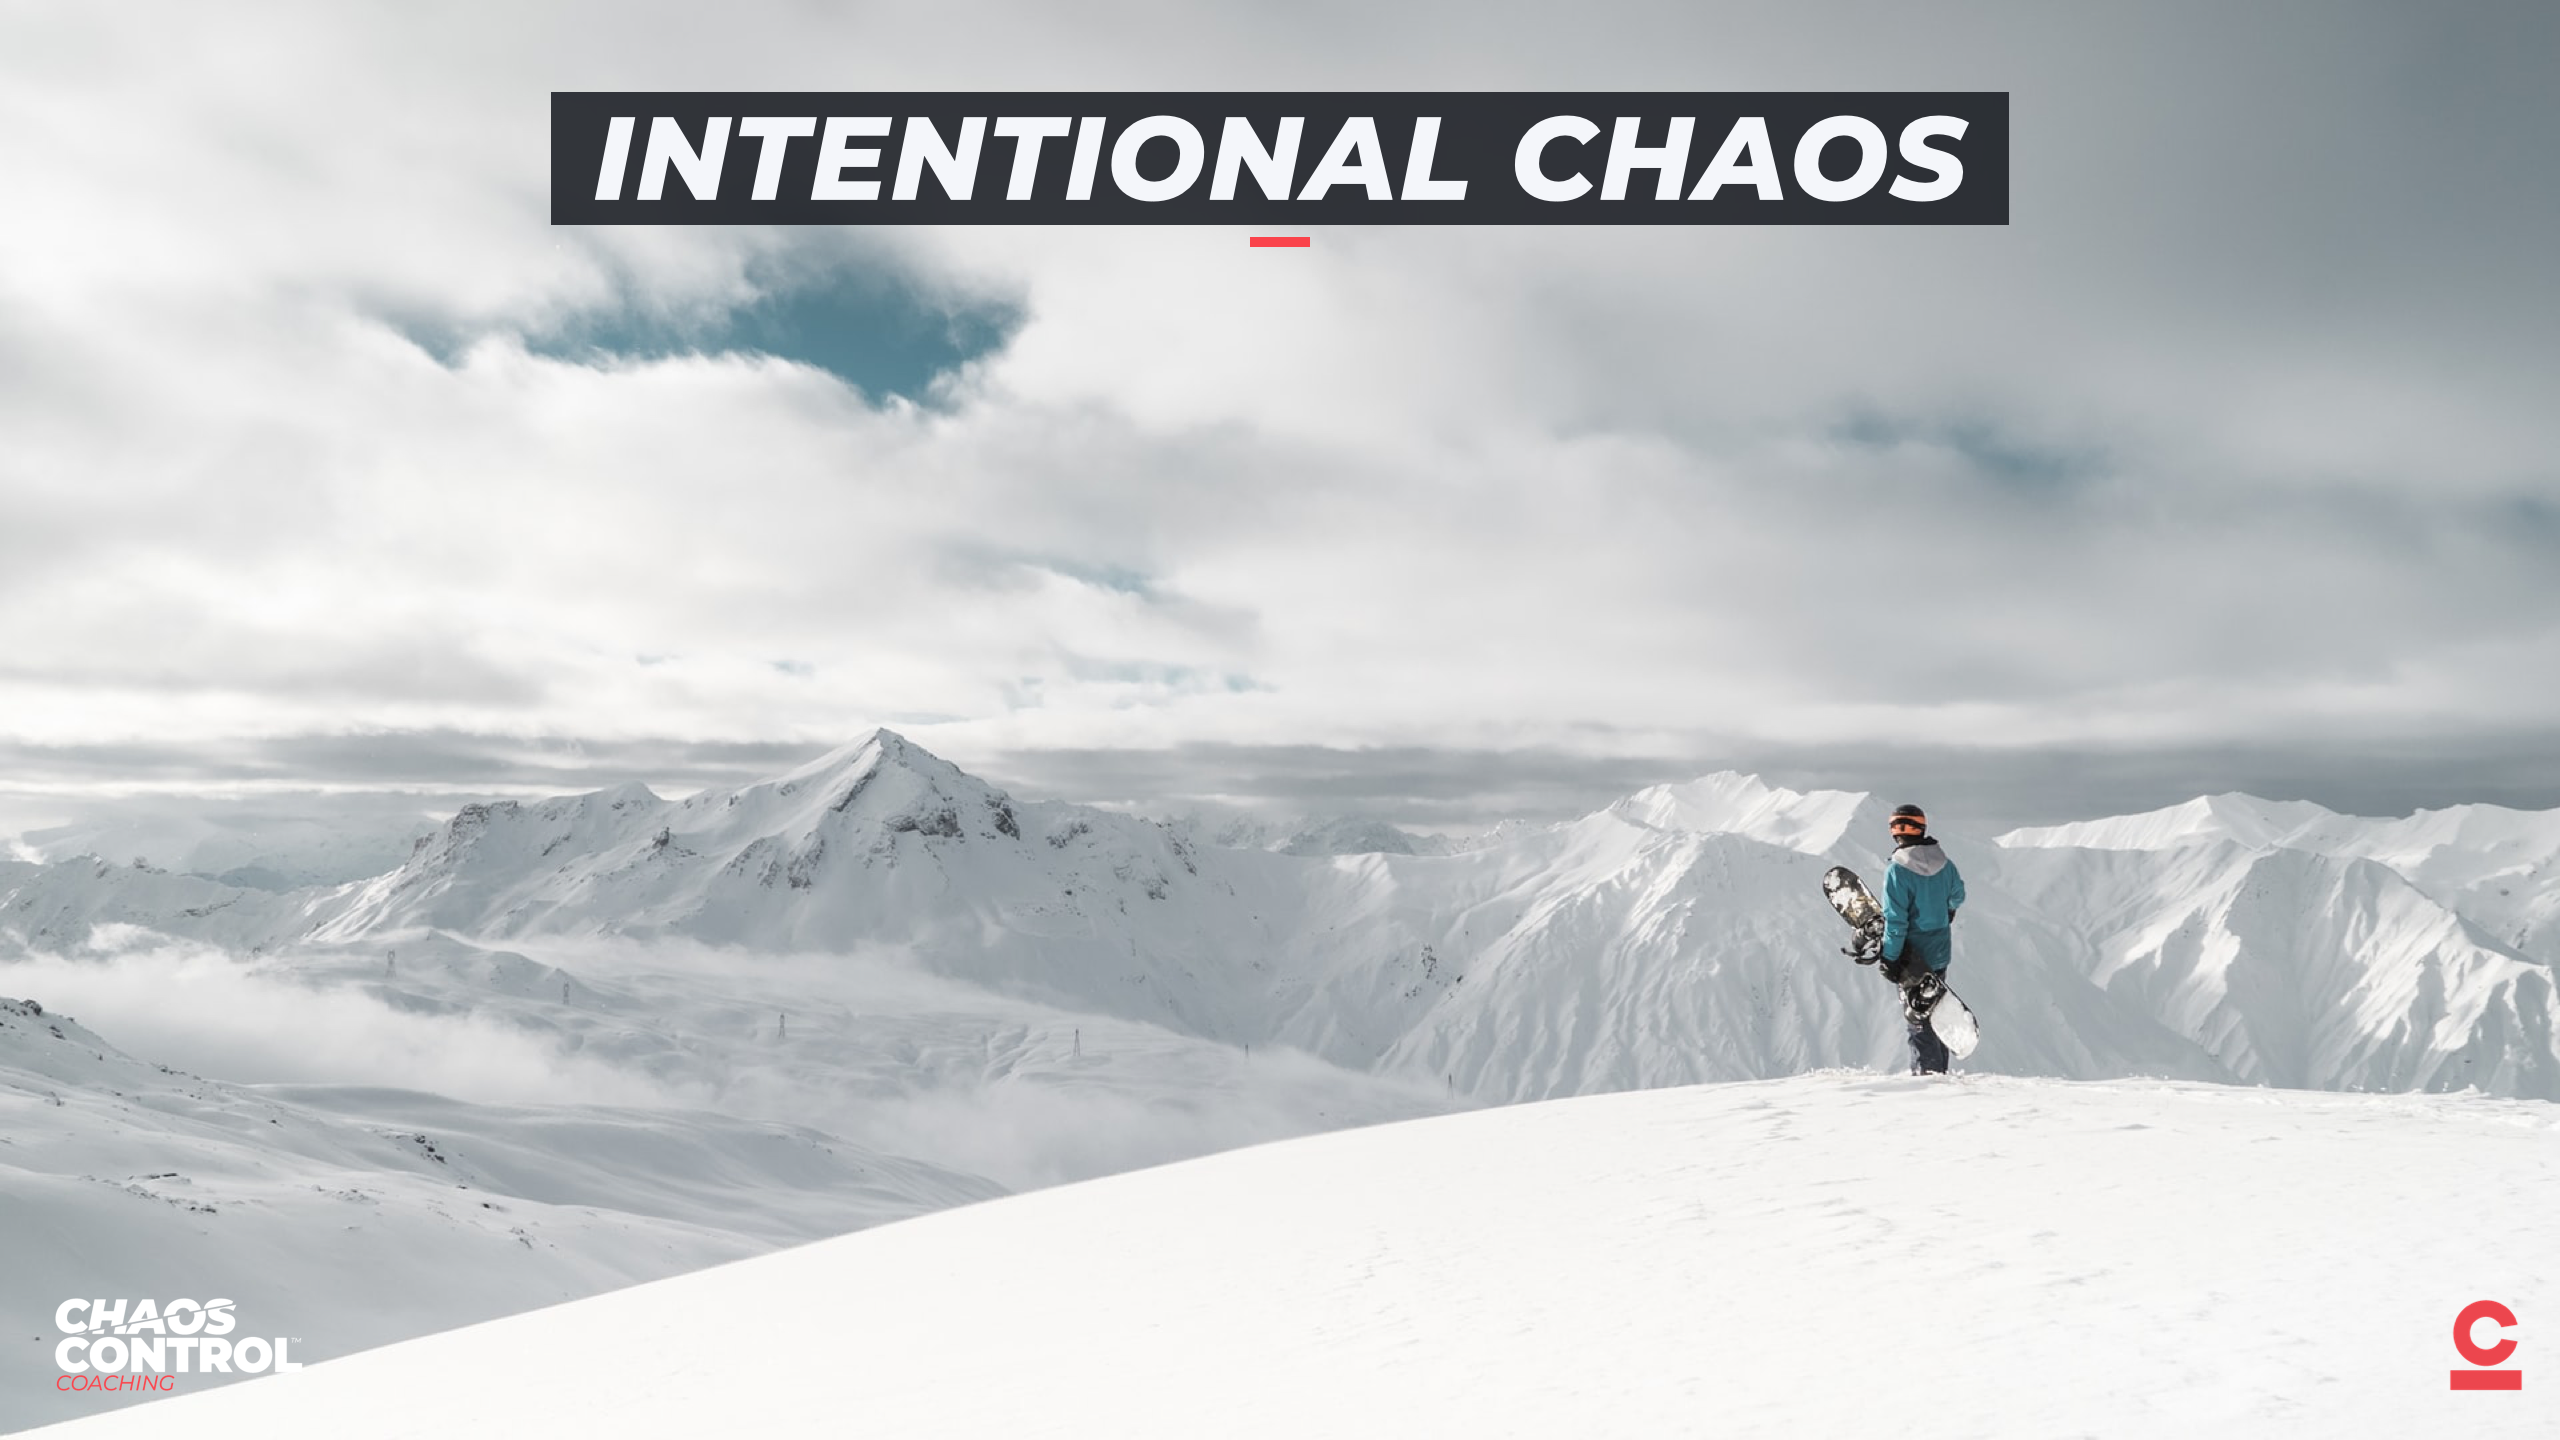 Intentional Chaos: VUCA & The External Flow Triggers